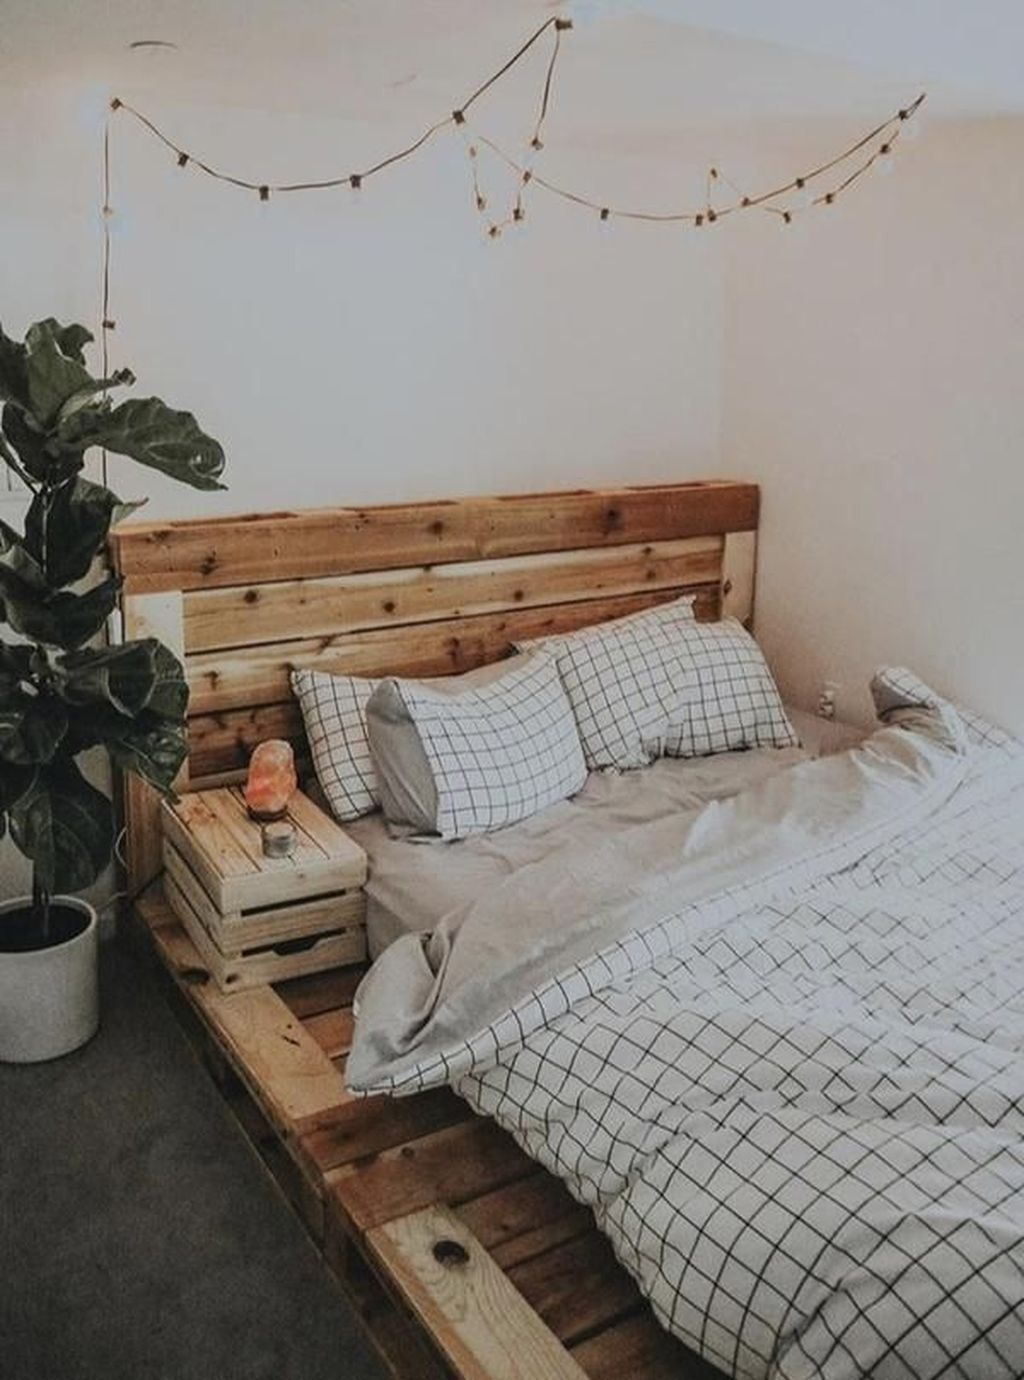 30 Comfy Bedroom Ideas That You Will Want To Sleep In Comfy